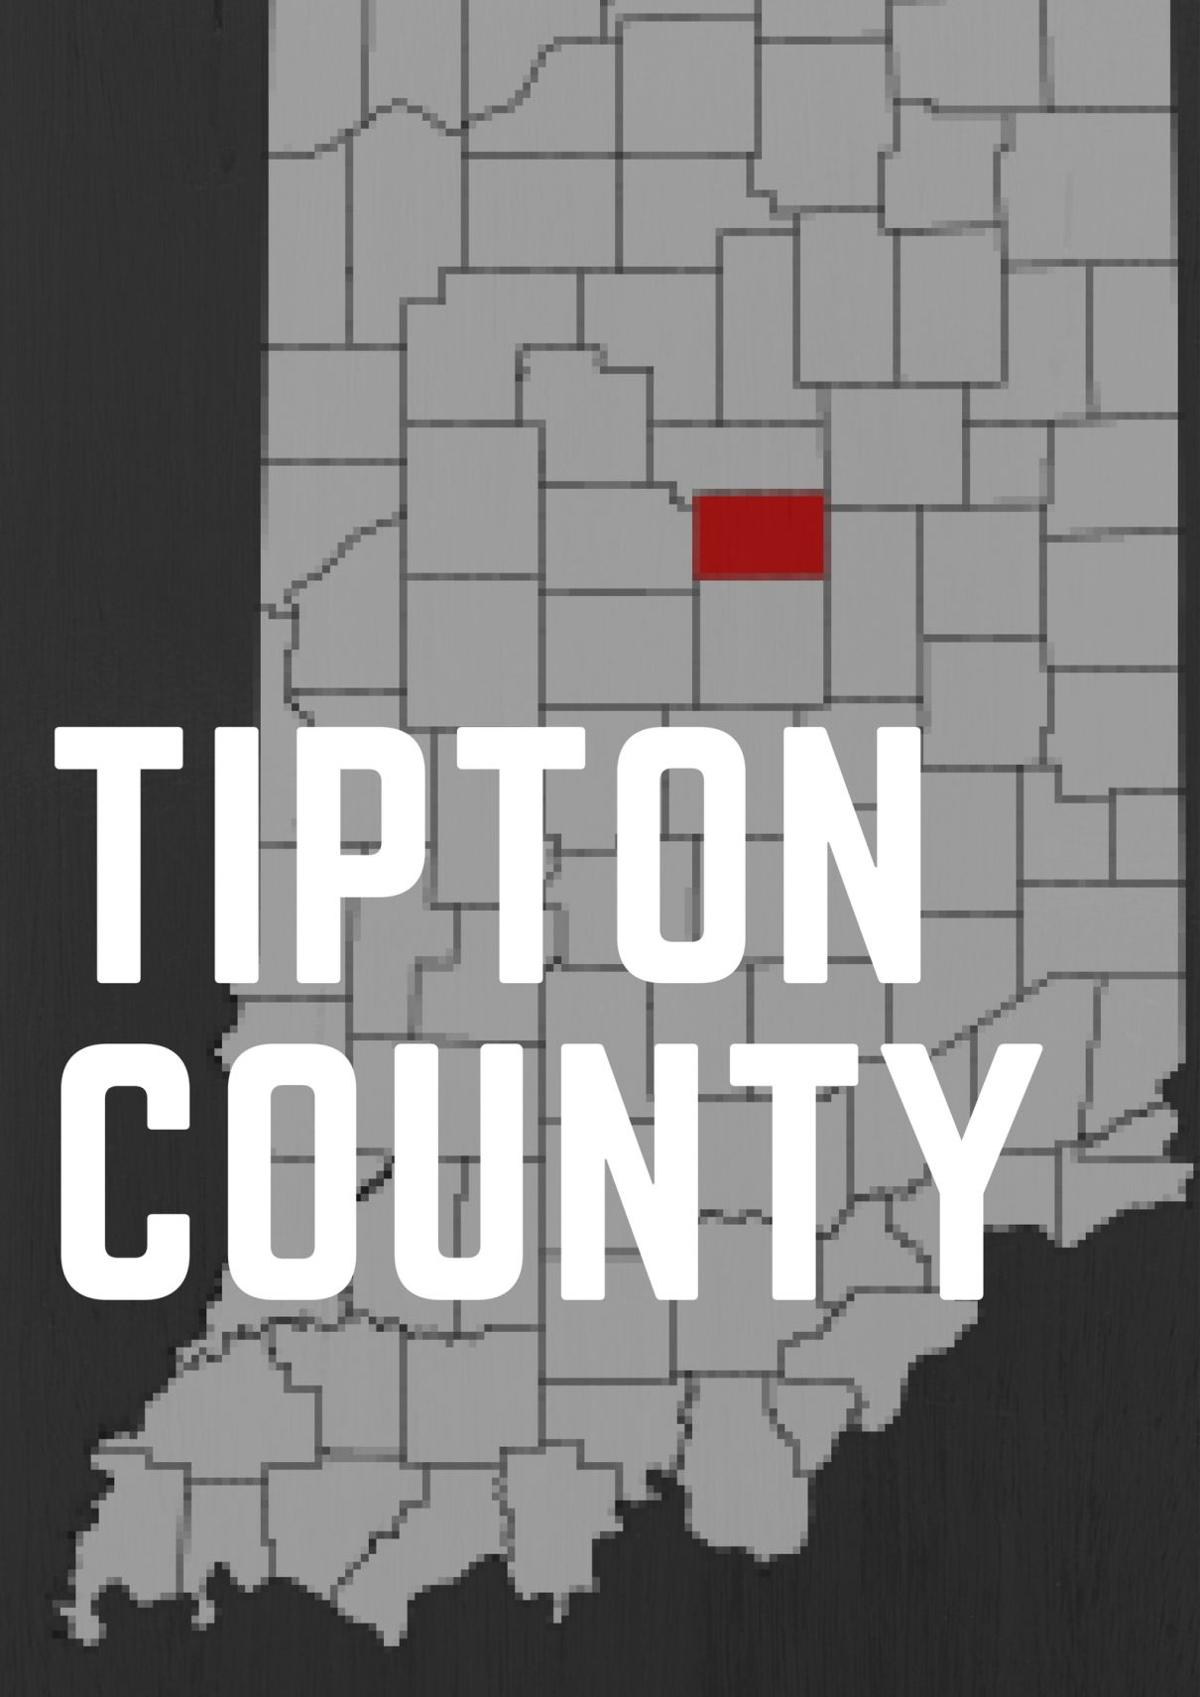 Tipton County Graphic (Map)